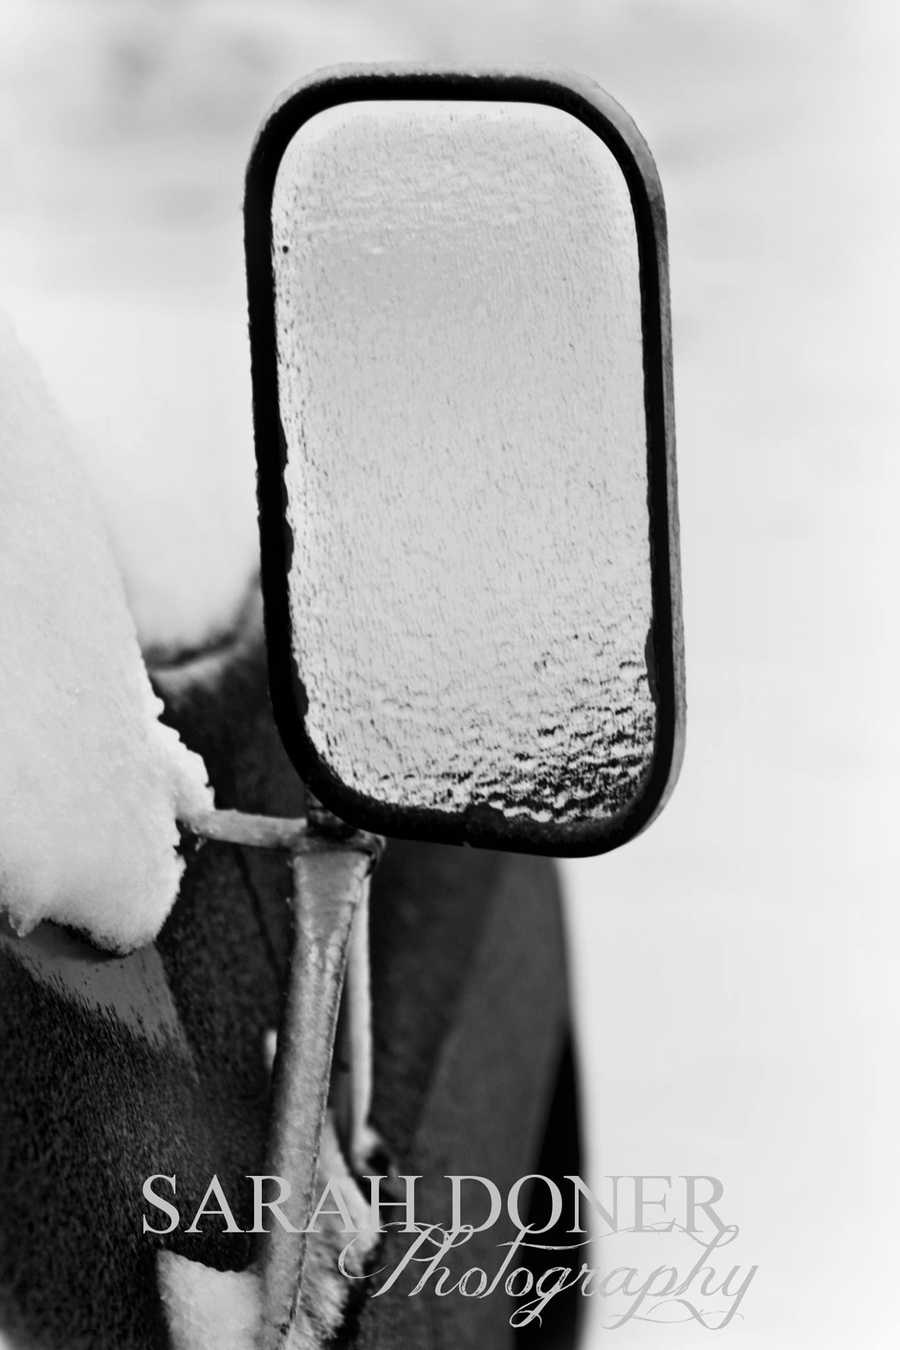 Sarah Doner submitted a photo of ice forming on a vehicle's side mirror.